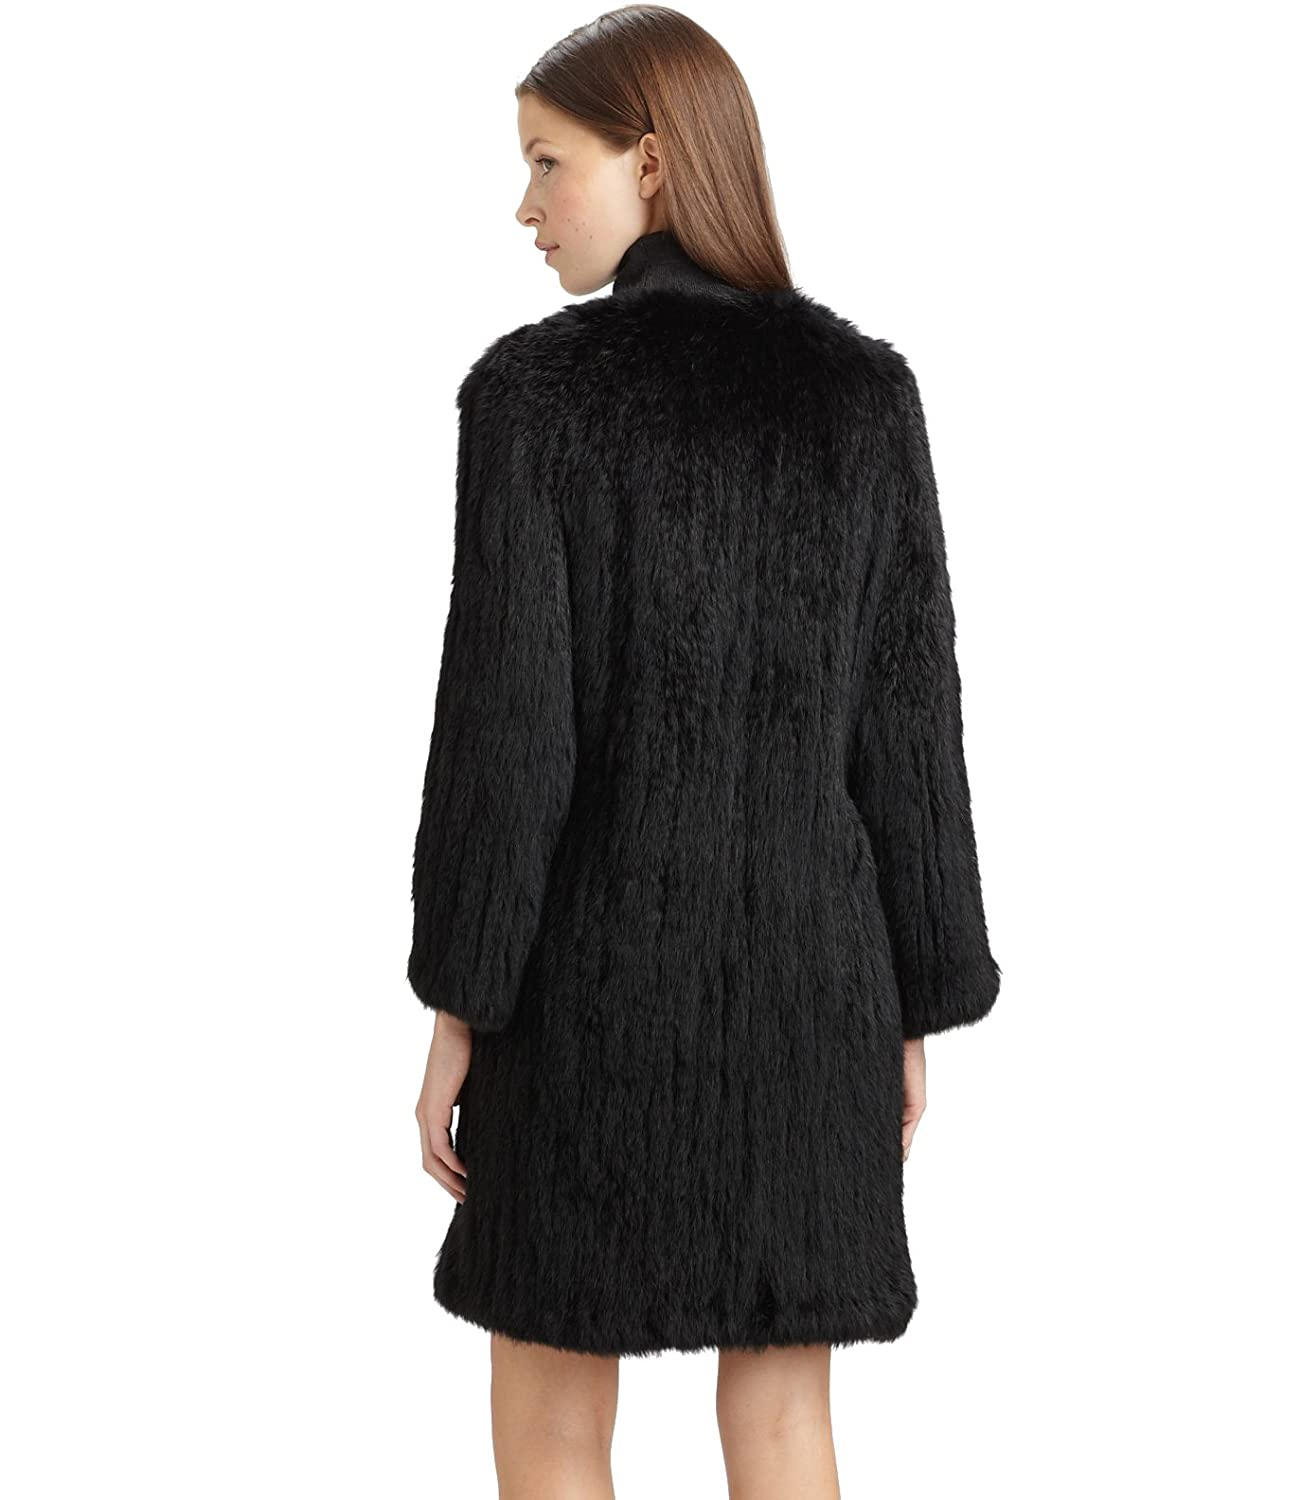 Topfur Women's Black Cardigan Knitwear Real Rabbit Fur Coat